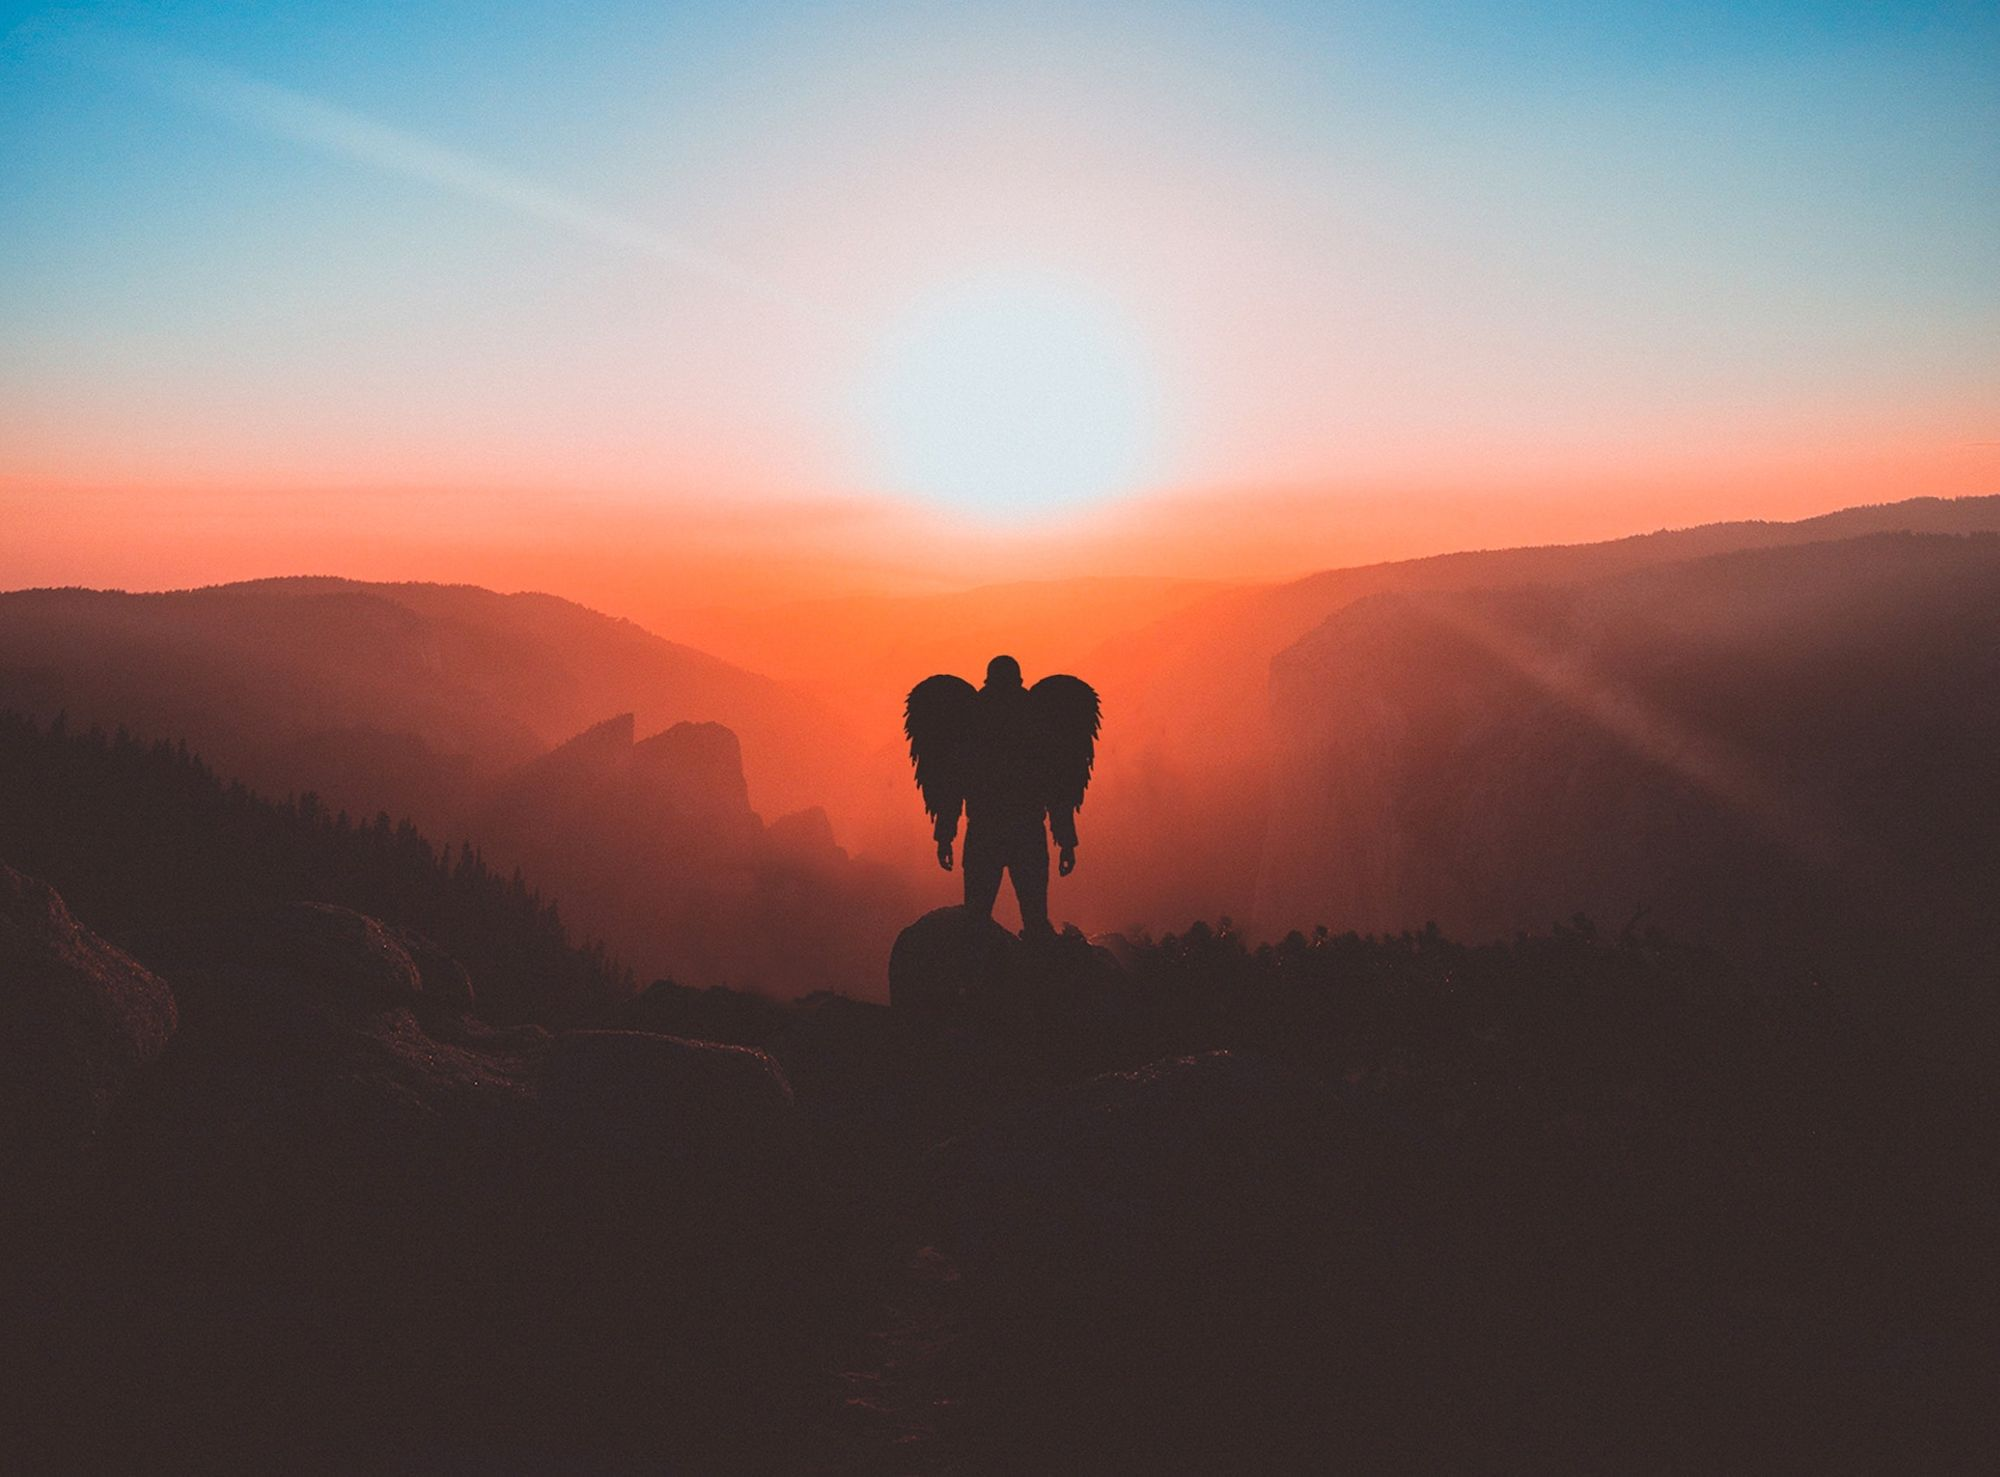 man-with-wings-standing-on-brown-mountain-peak-2043837-2